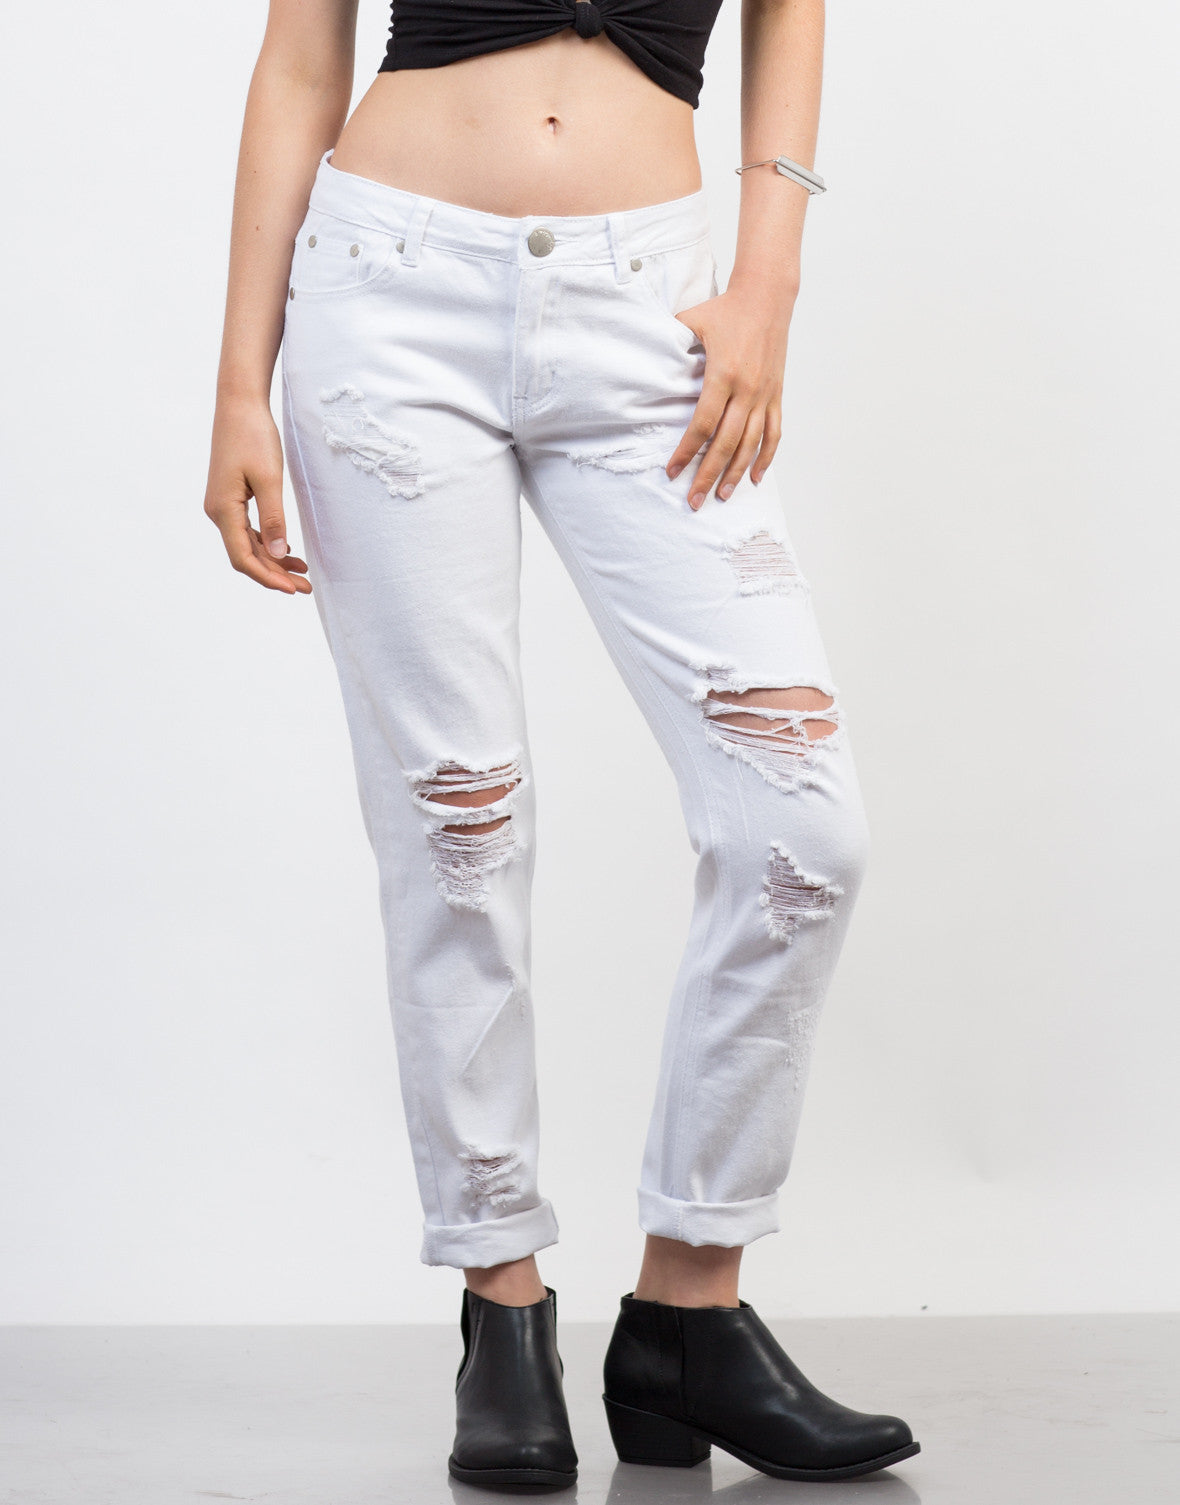 White Ripped Boyfriend Jeans - White Destroyed Denim Jeans